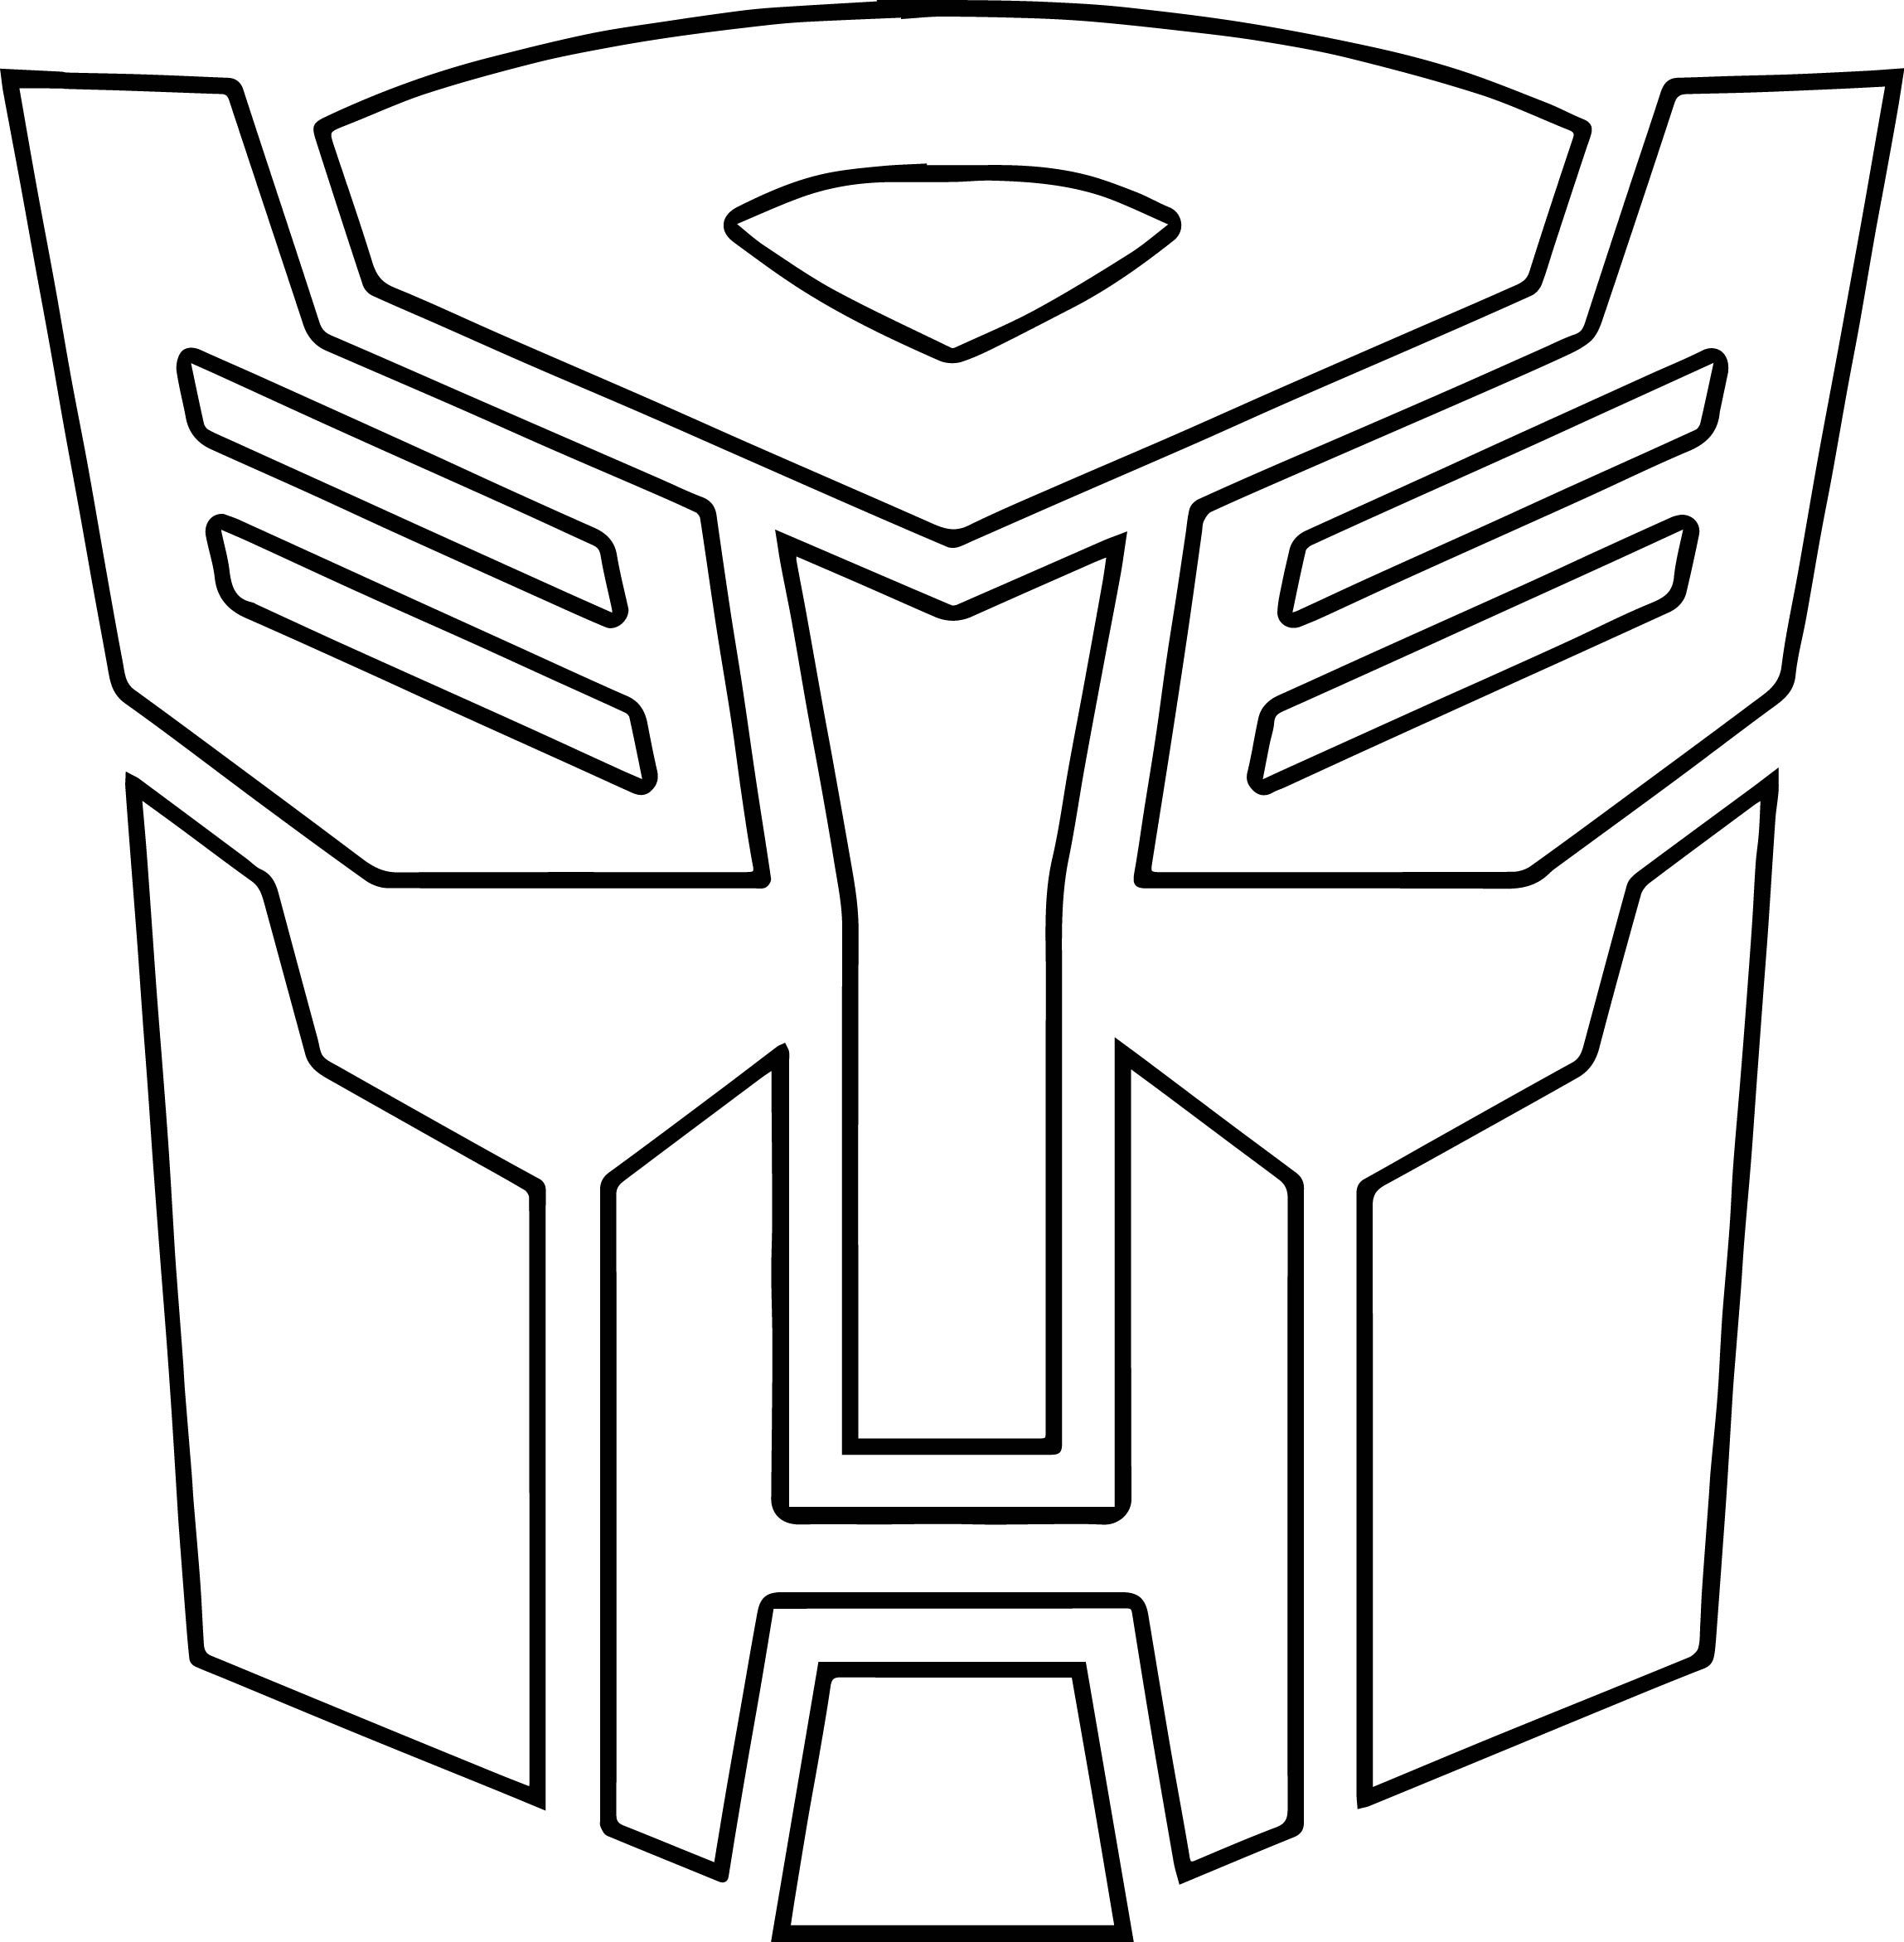 Transformer Logo Coloring Pages To Print 11 R In 2020 Transformers Cake Transformers Birthday Cake Transformer Birthday